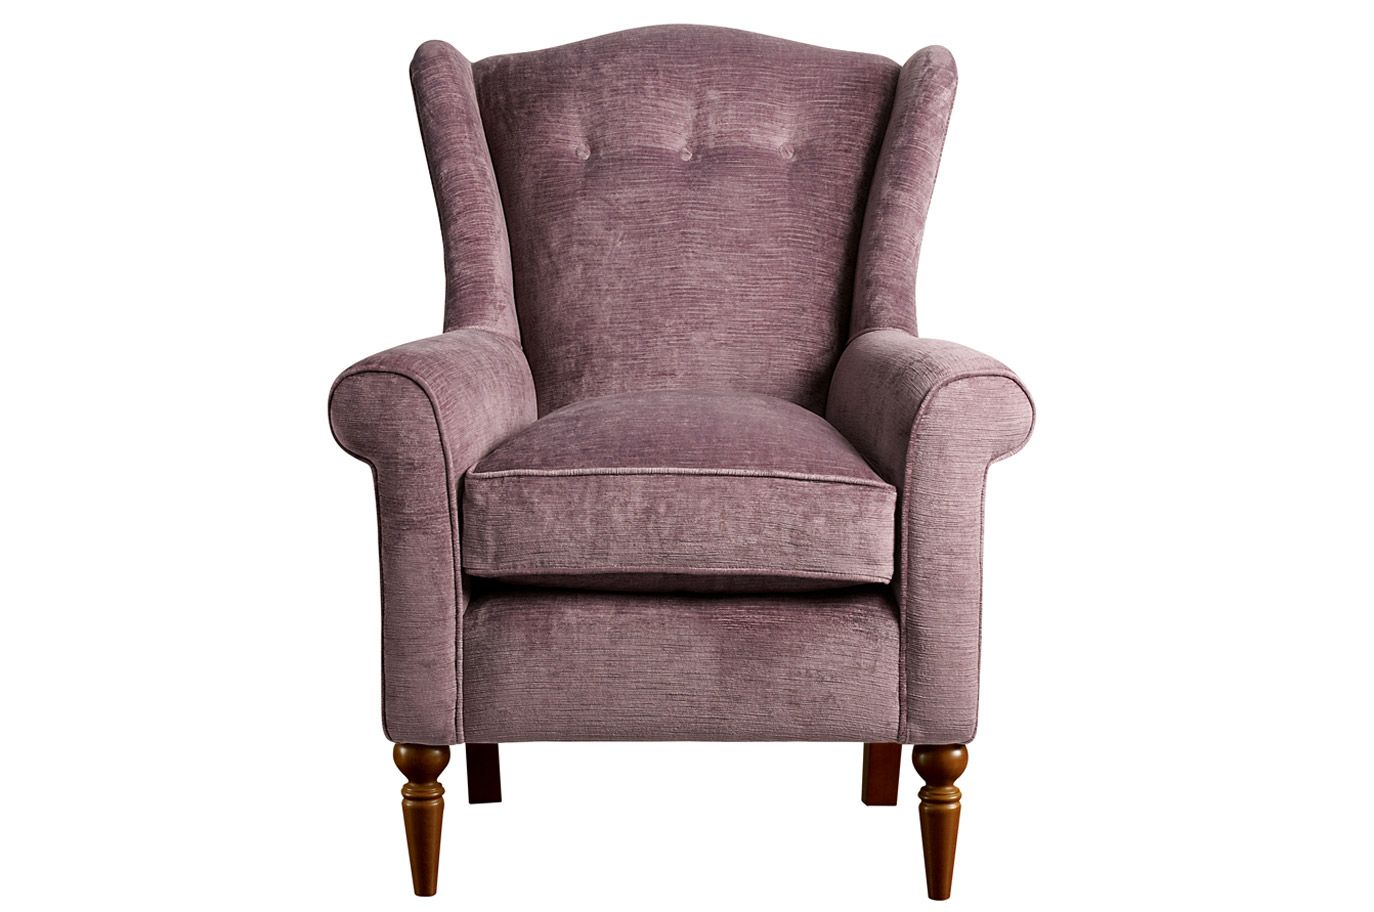 Image Detail For Finchley Upholstered Wing Chair Laura Ashley Made To Order Fauteuil